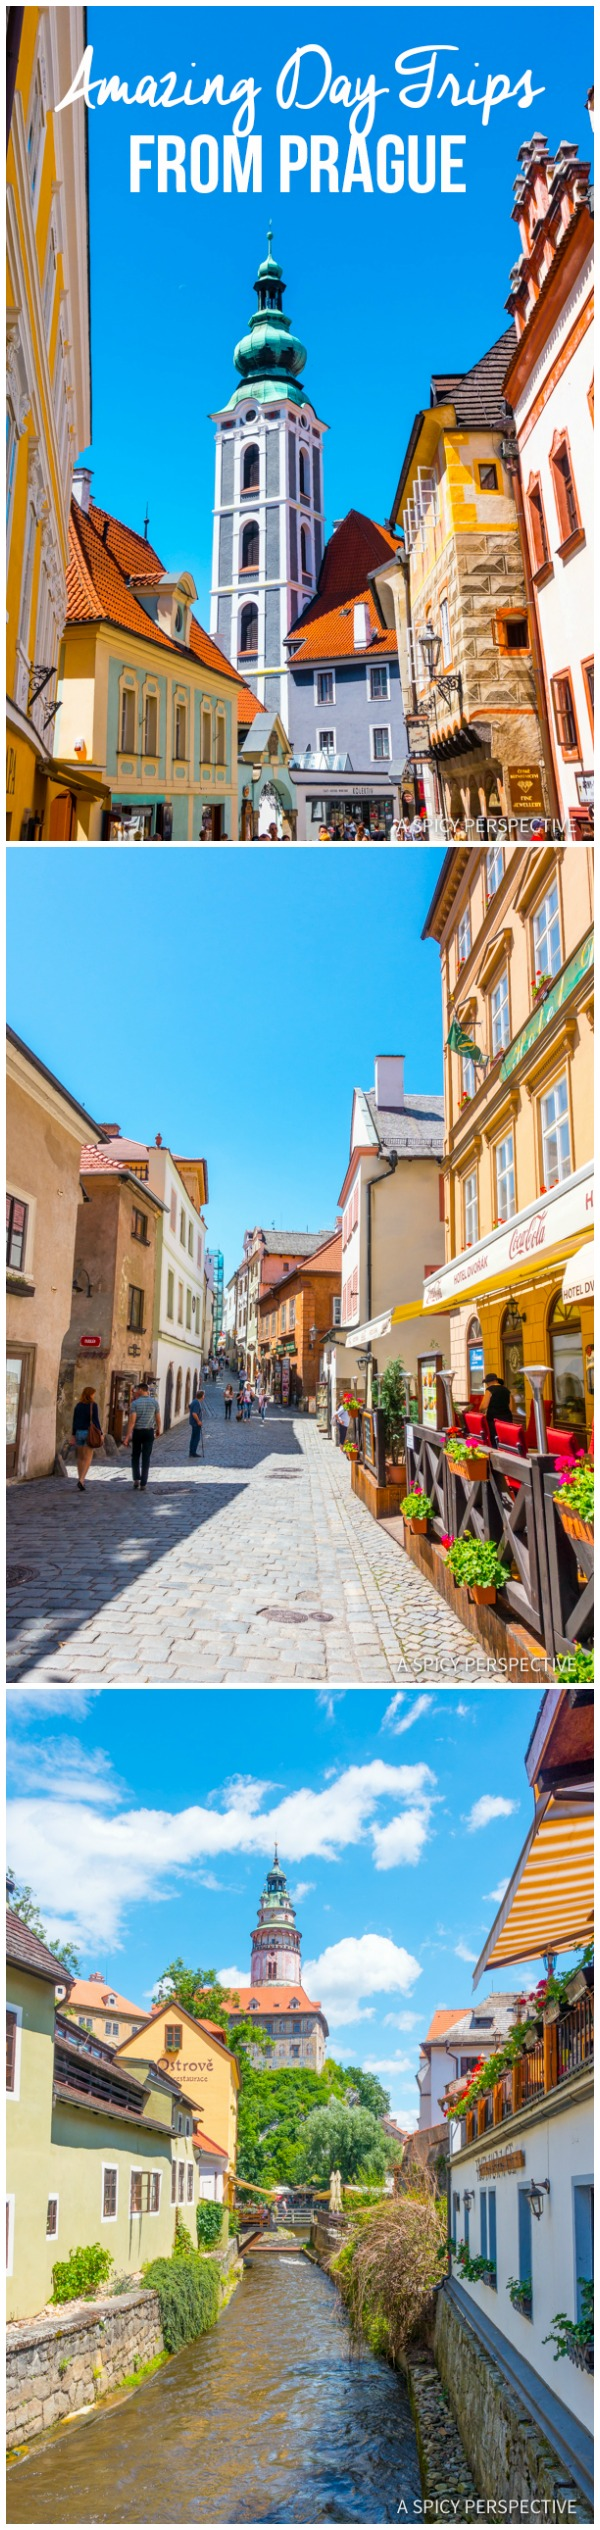 Perfect Day Trips from Prague | ASpicyPerspective.com #travel #europe